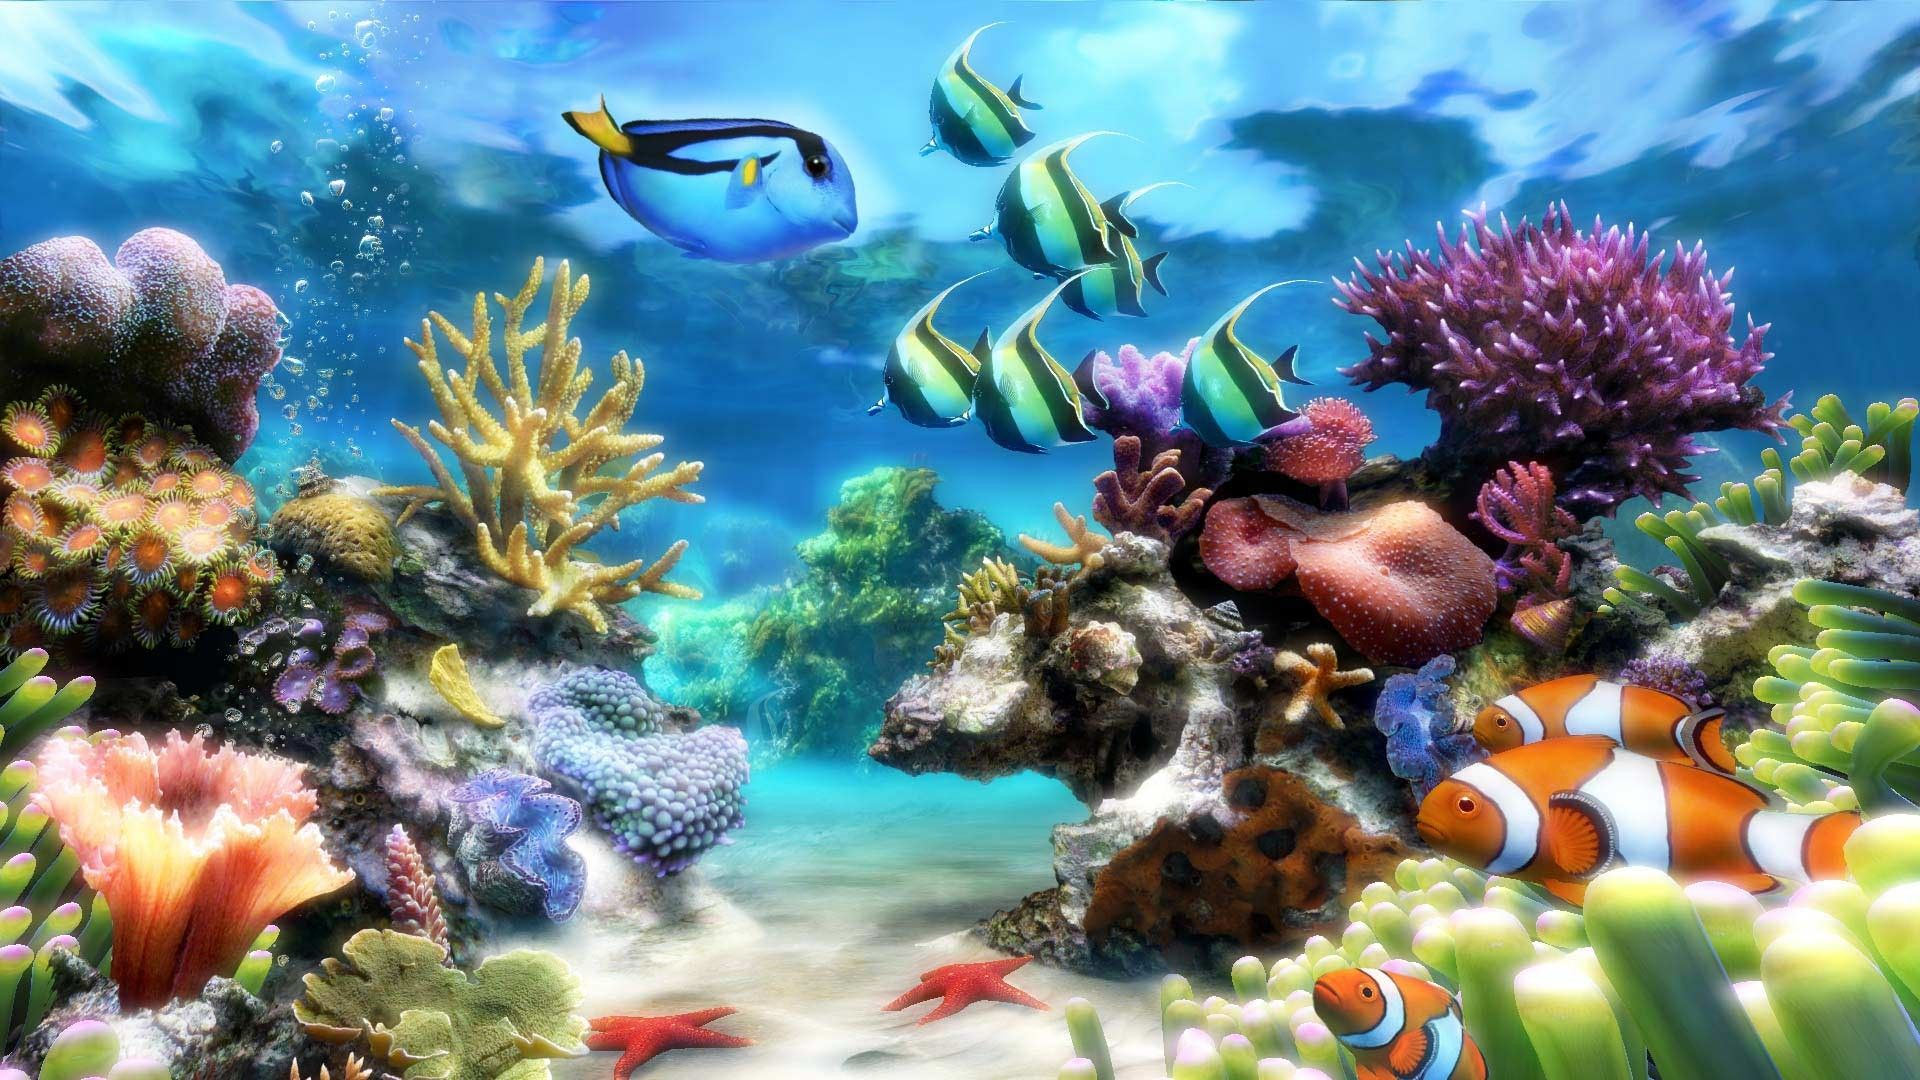 1920x1080 How To Get An Aquarium As Your Desktop Background Xp Vista 3d Fish Screensaver Aquarium Screensaver Aquarium Live Wallpaper Aquarium Pictures